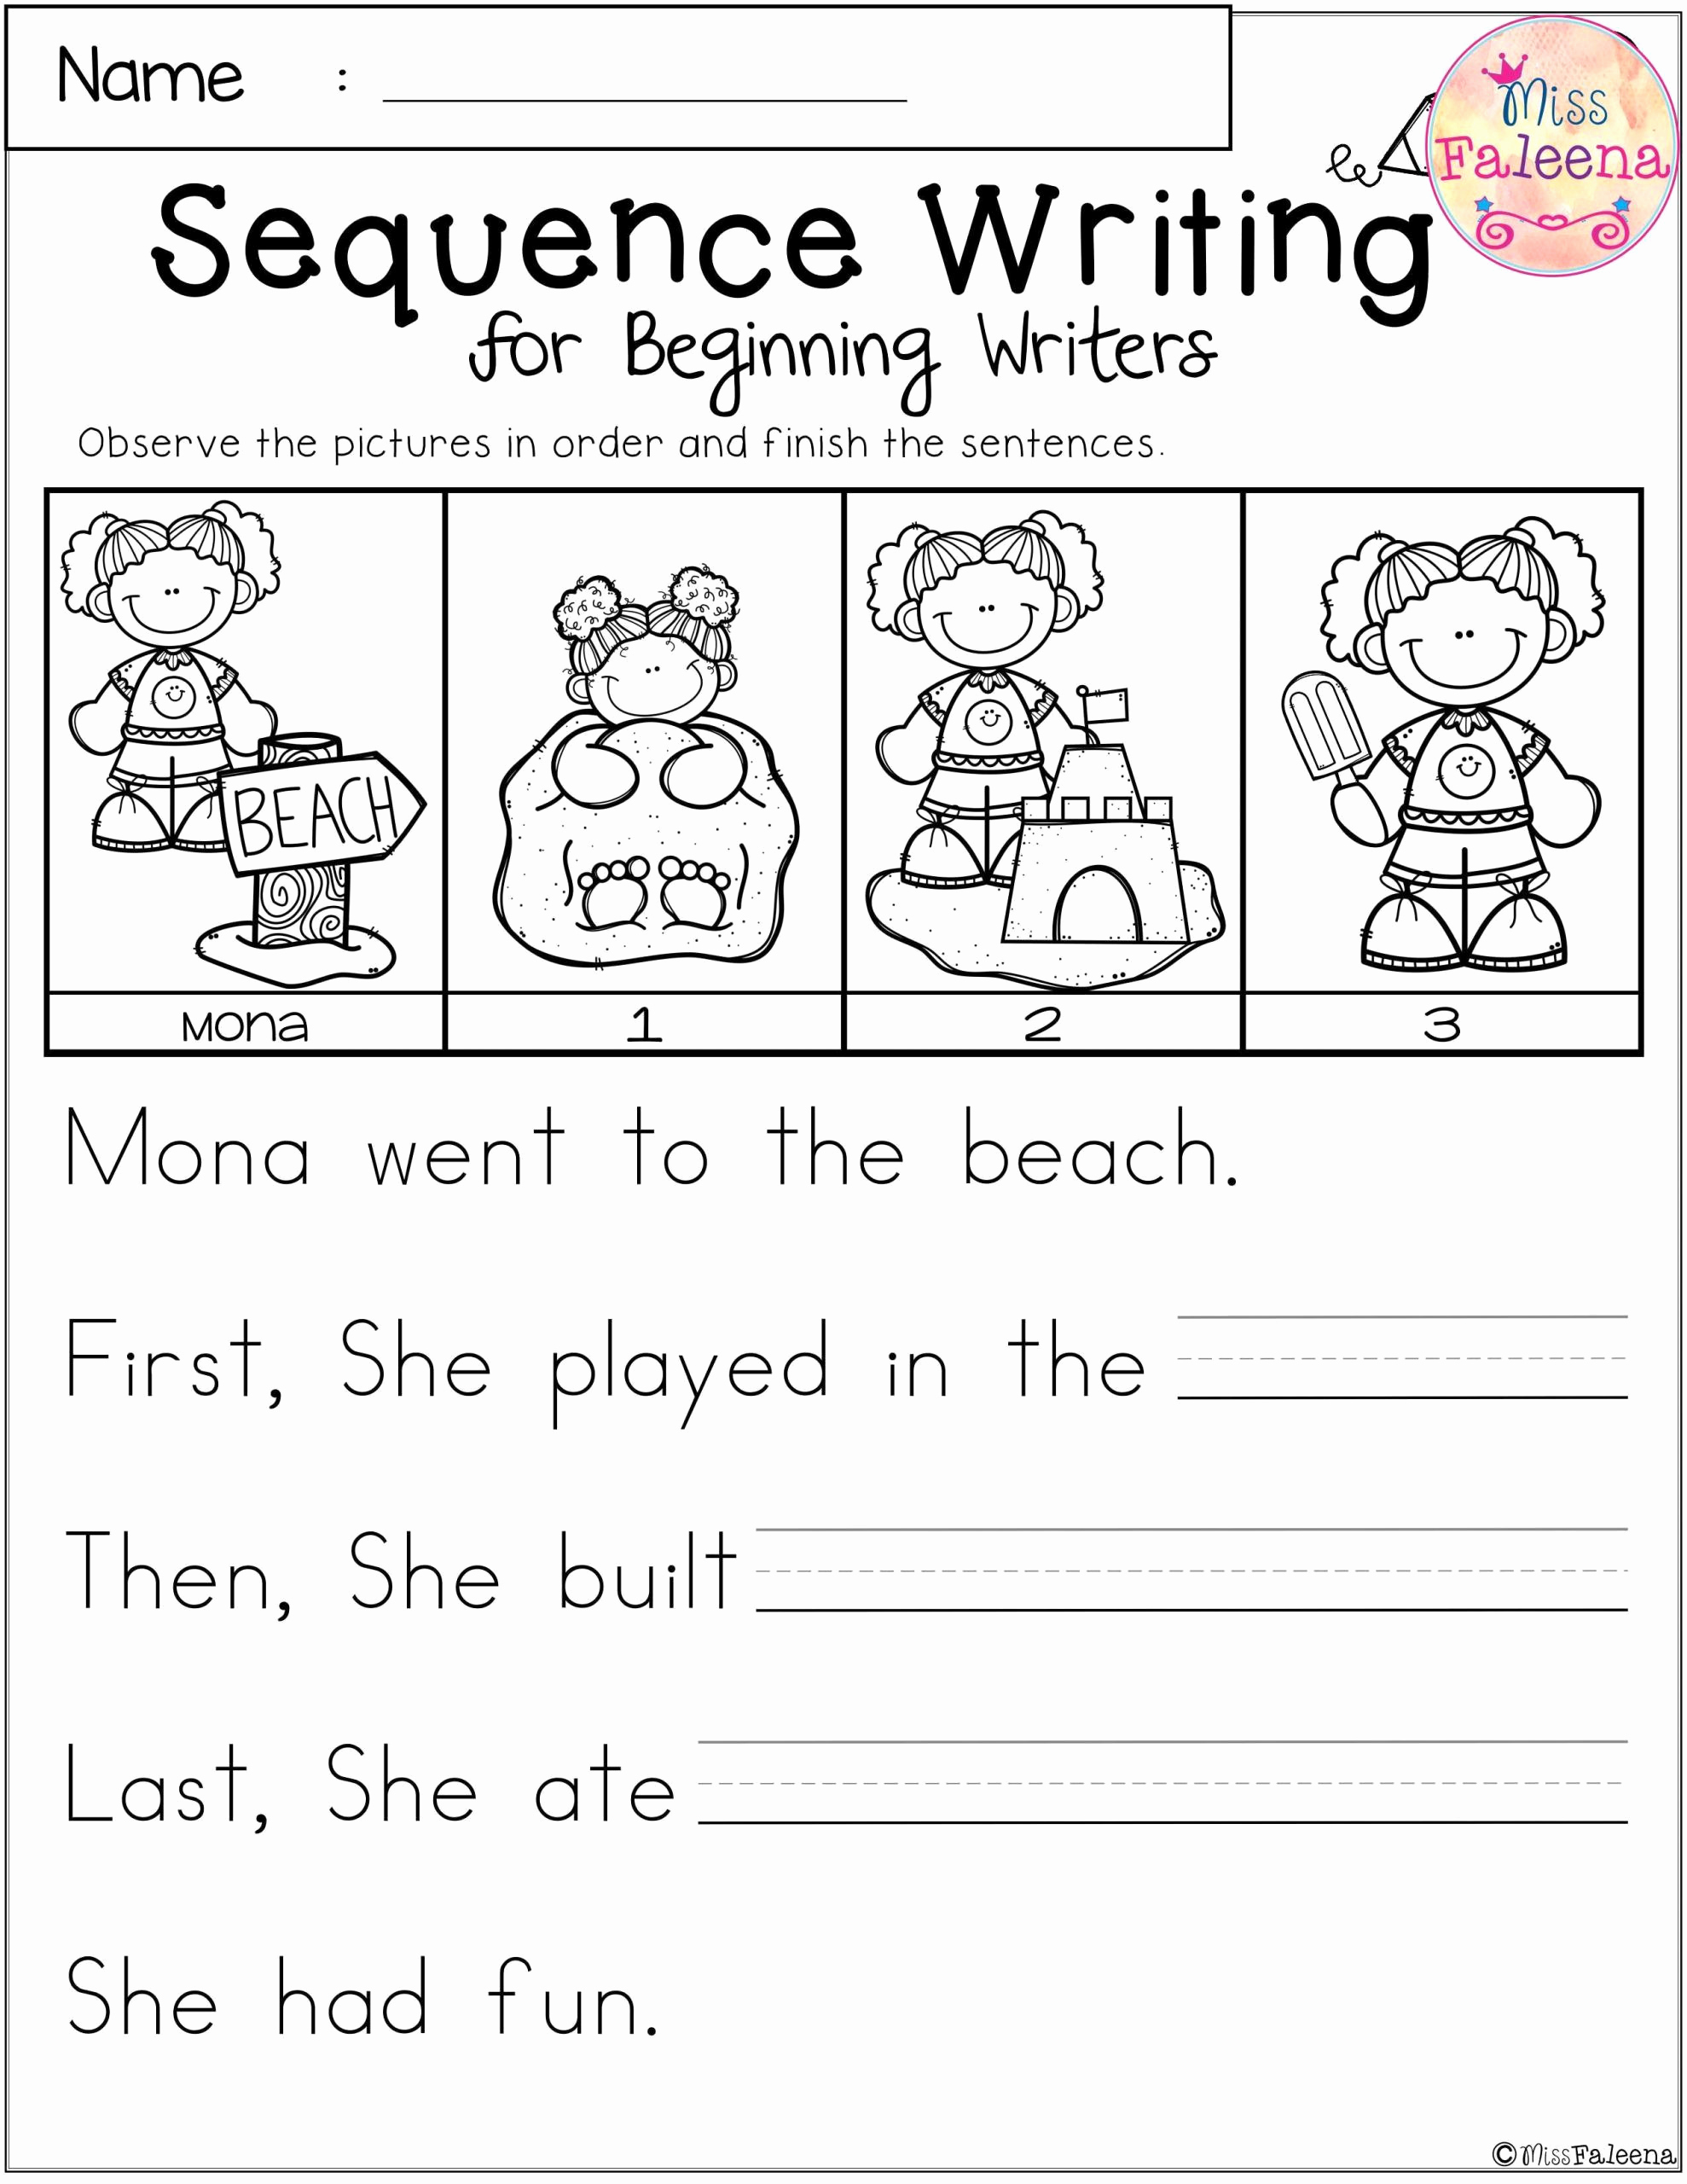 Sequencing Worksheets 4th Grade New 4th Grade Sequencing Worksheets